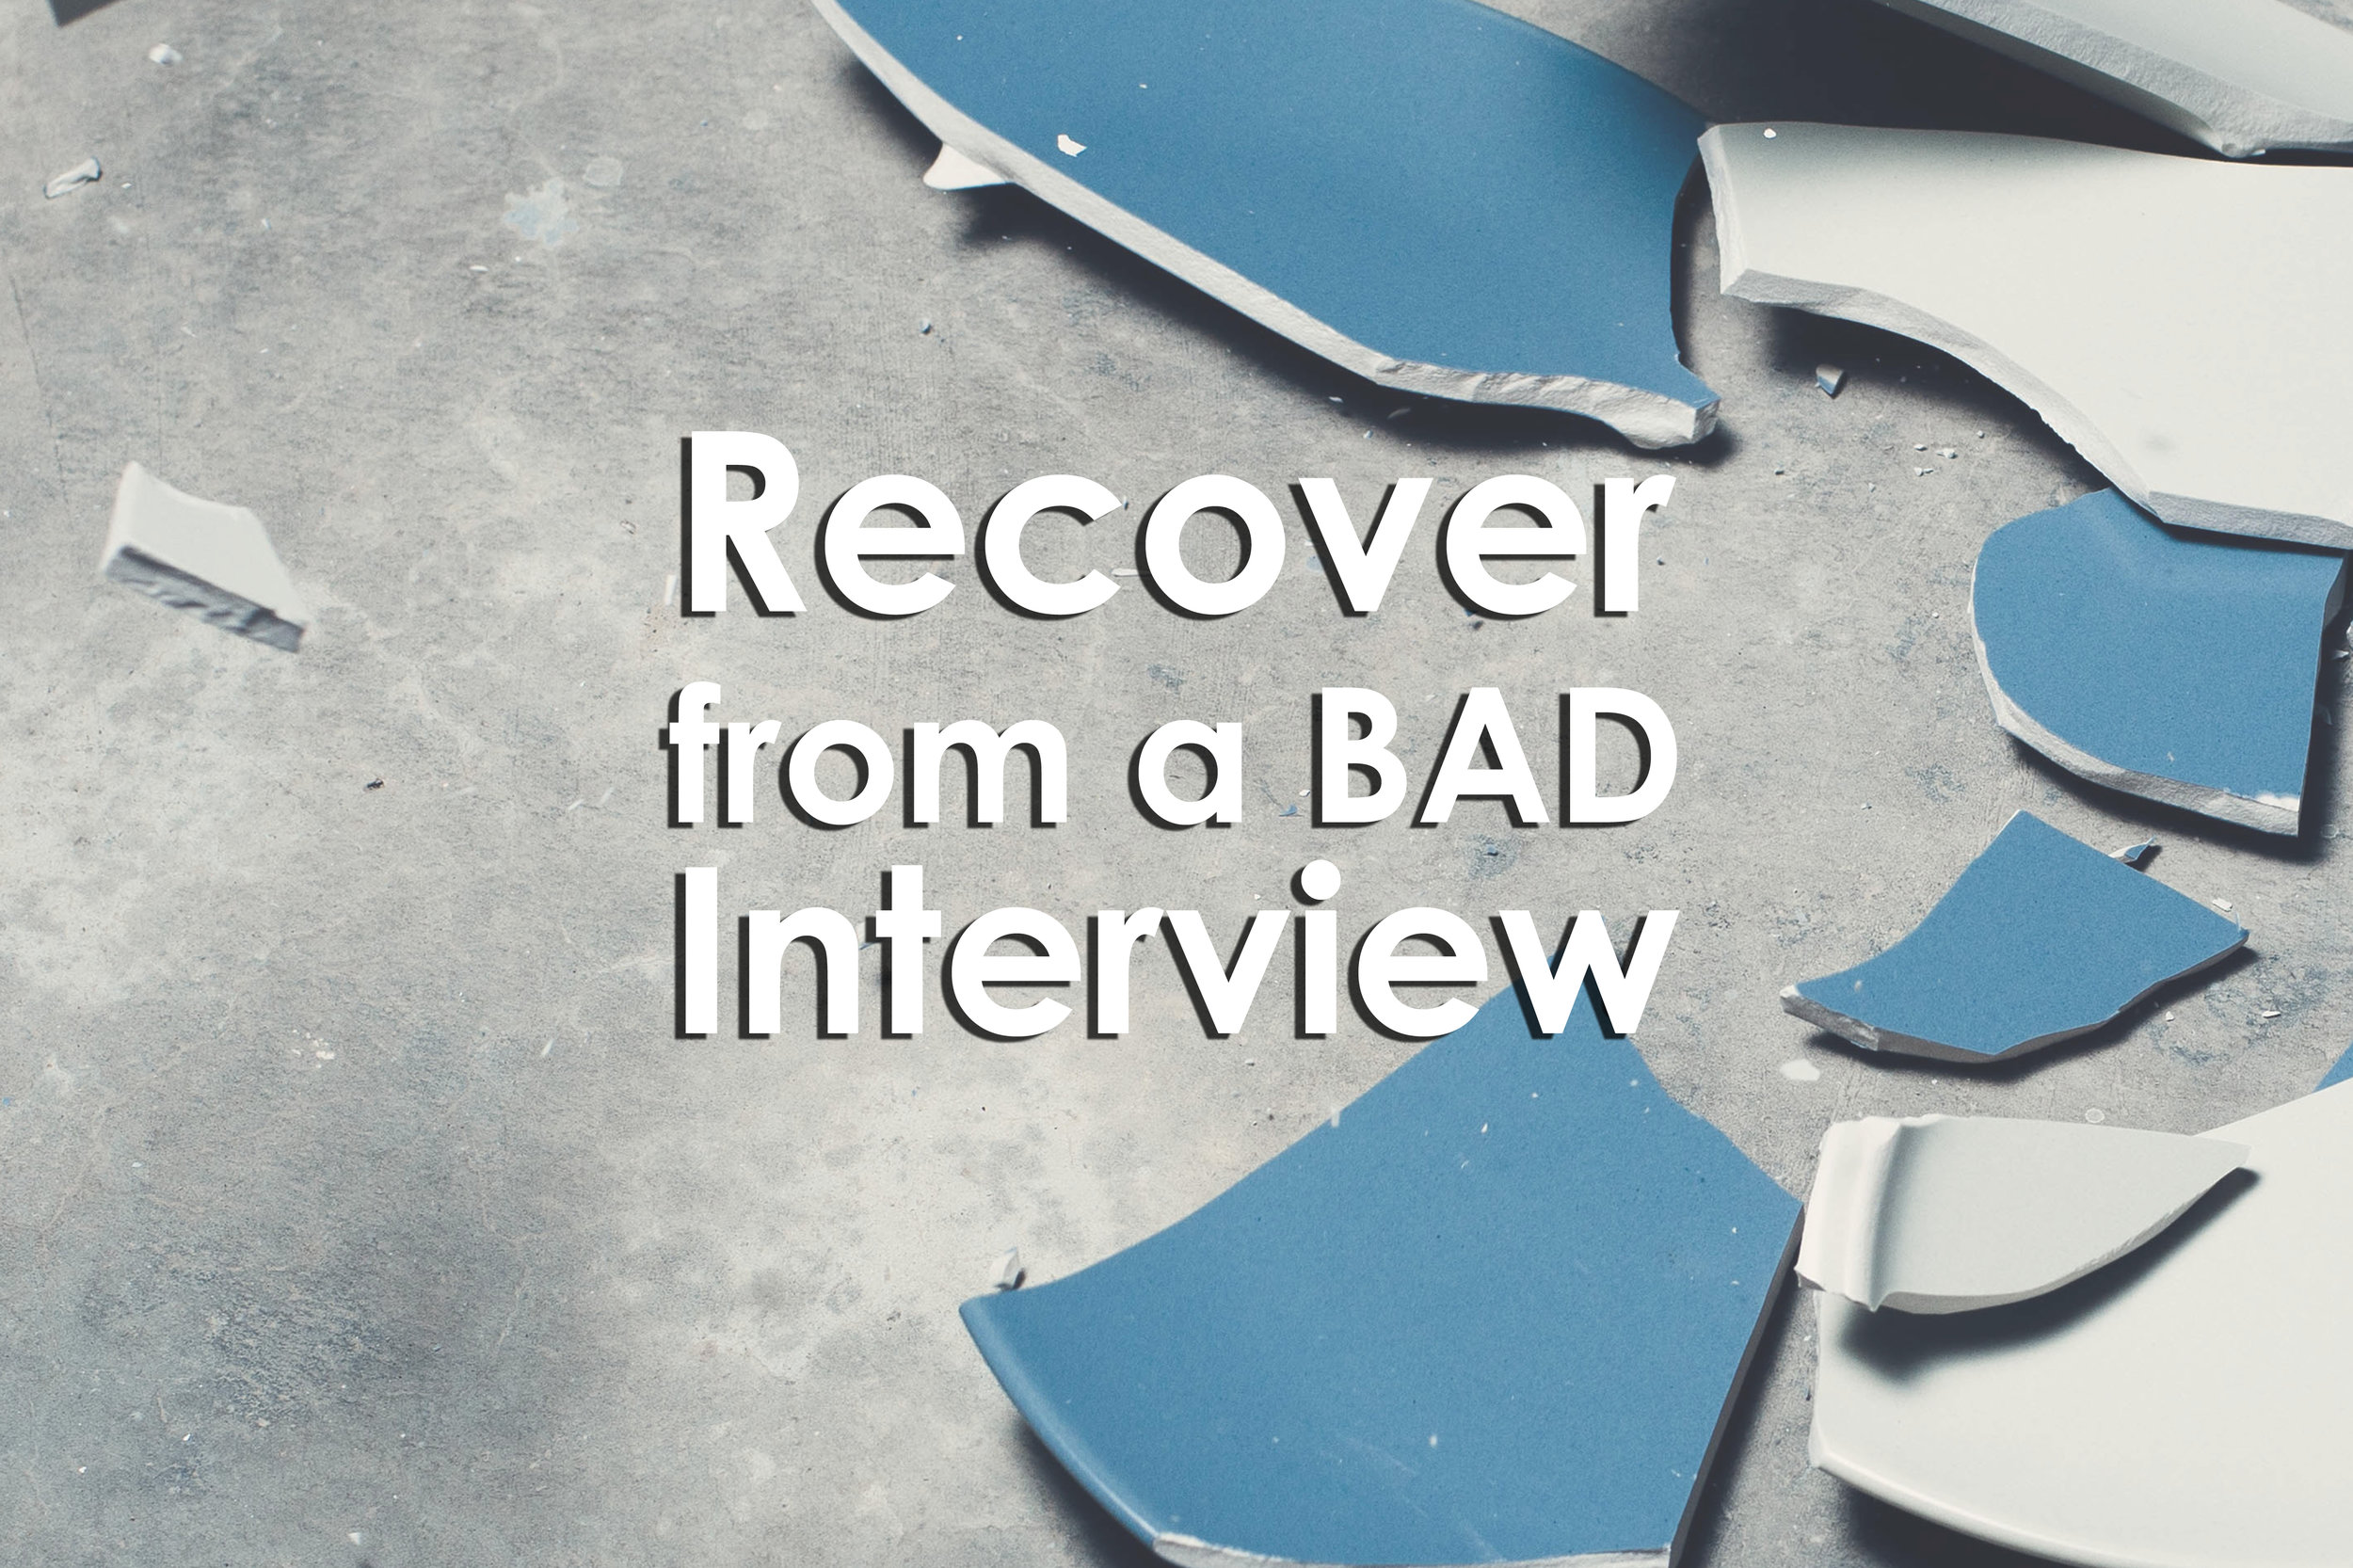 Recover from a BAD Interview